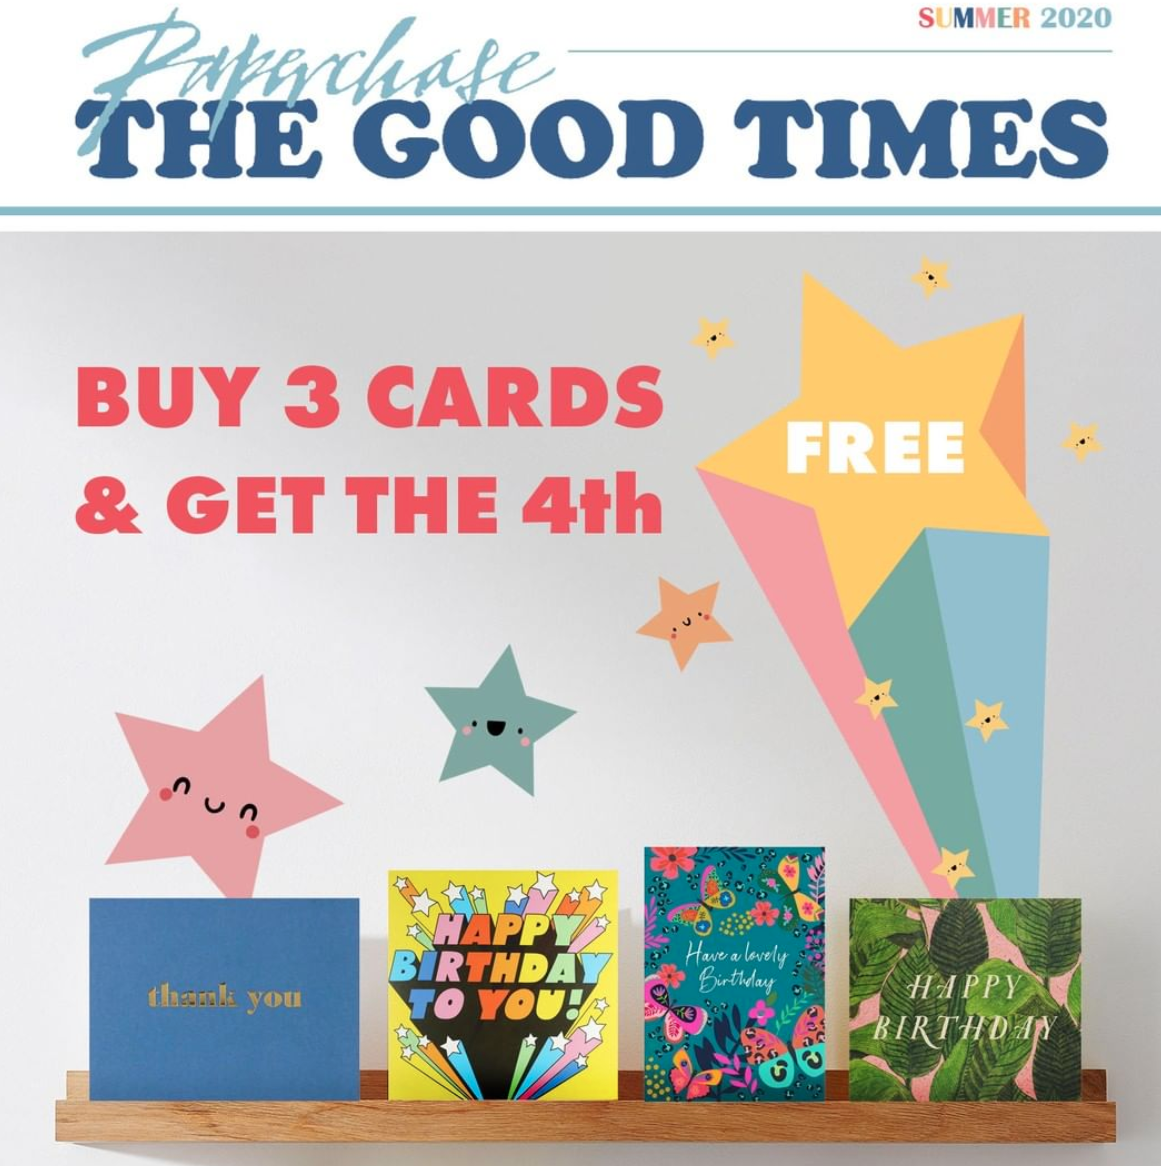 Above: A current Paperchase promotion.